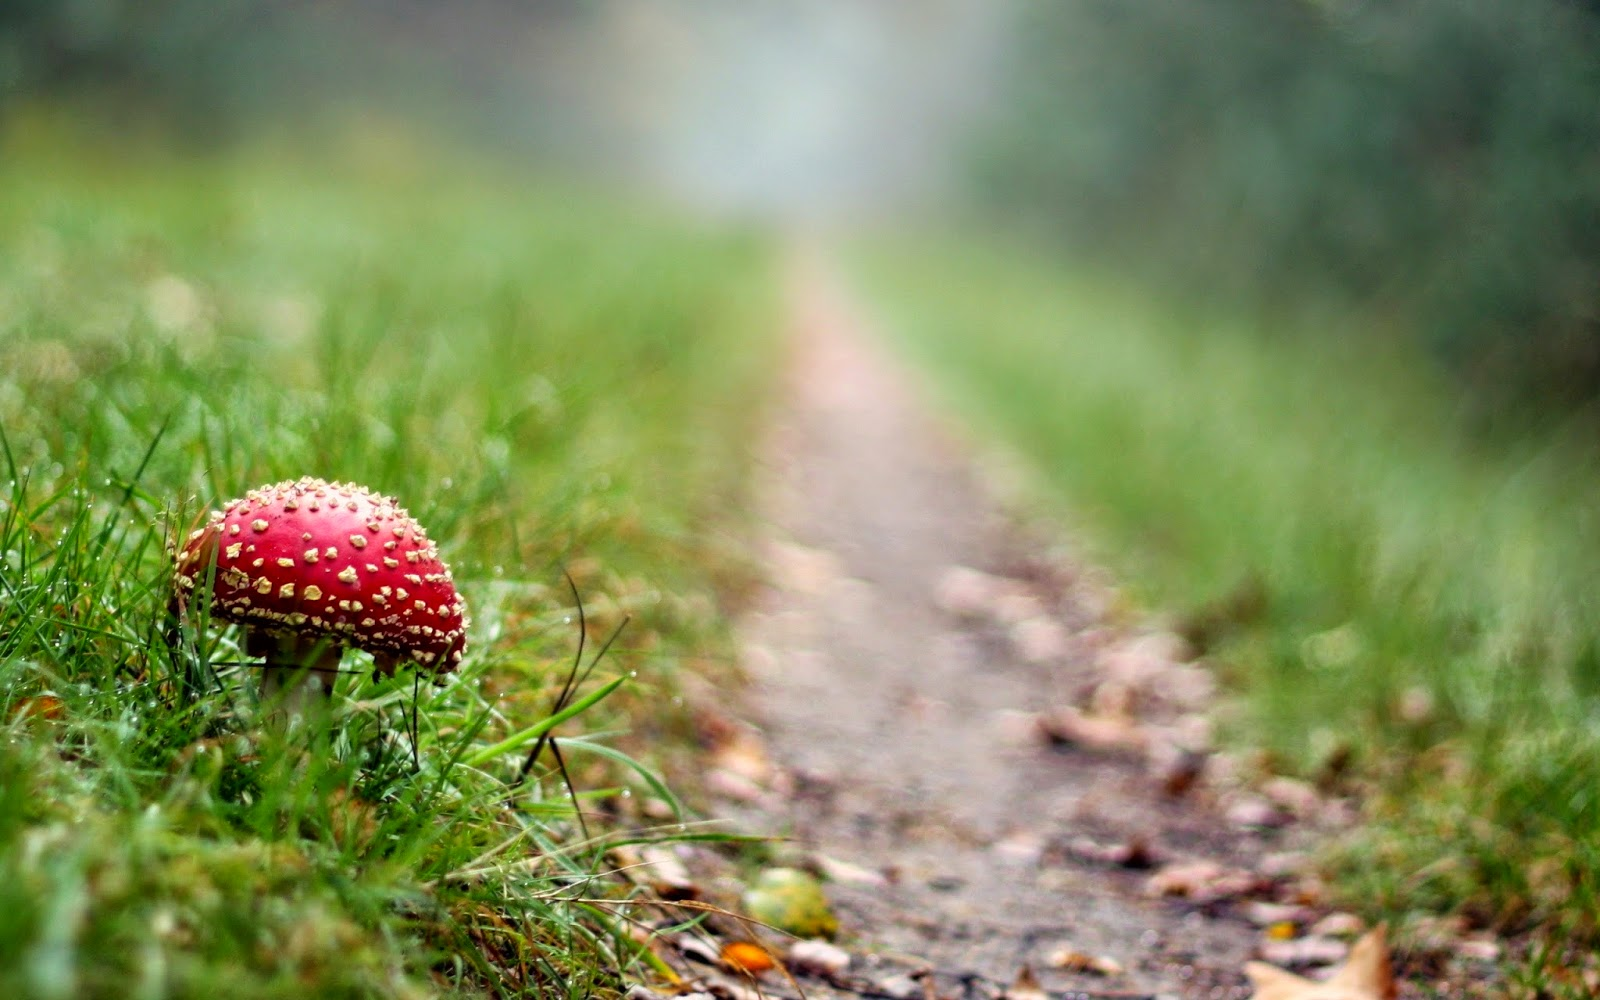 wallpaper-amanita-muscaria-red-mushroom-beautiful-mushroom-macro-photography